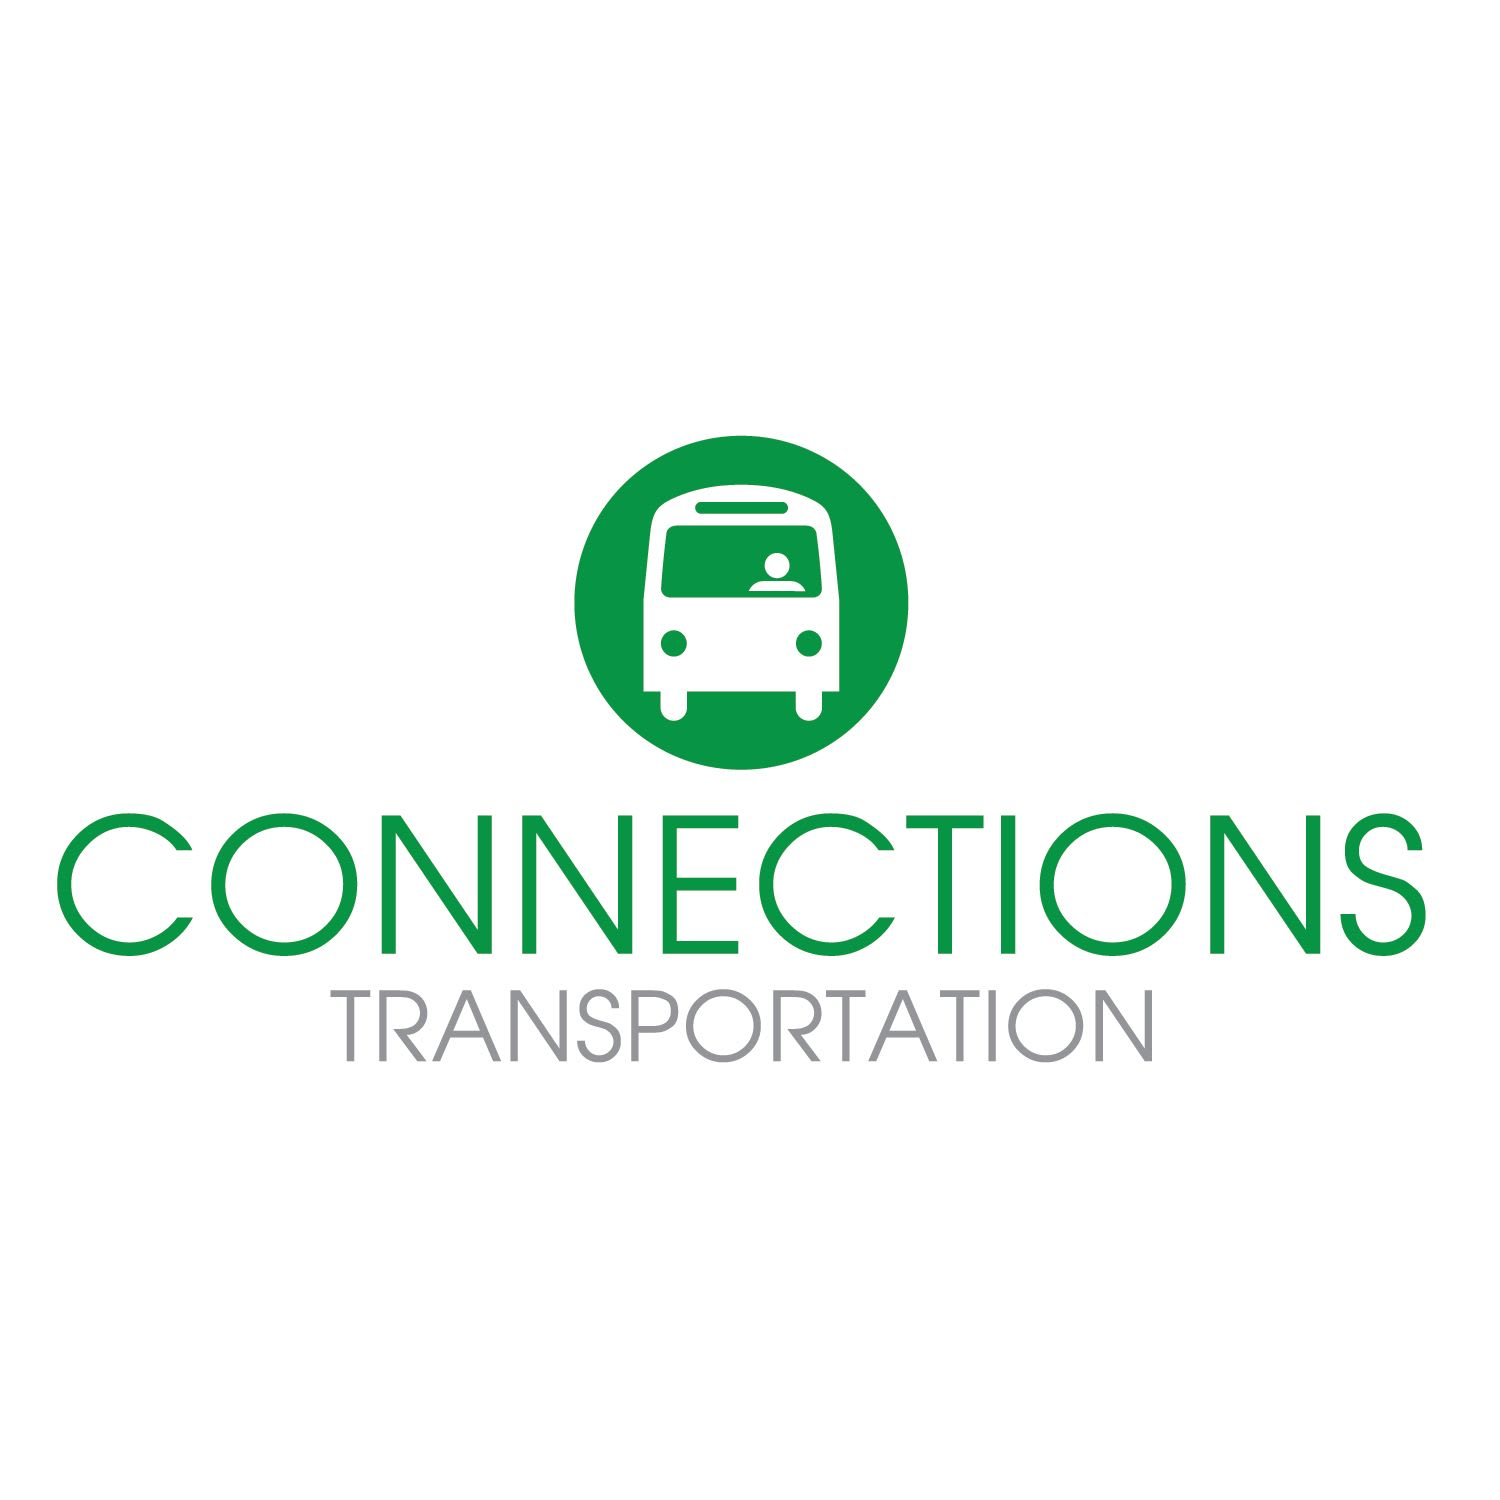 Senior living connections in Palm Beach Gardens for transportation and maintenance.